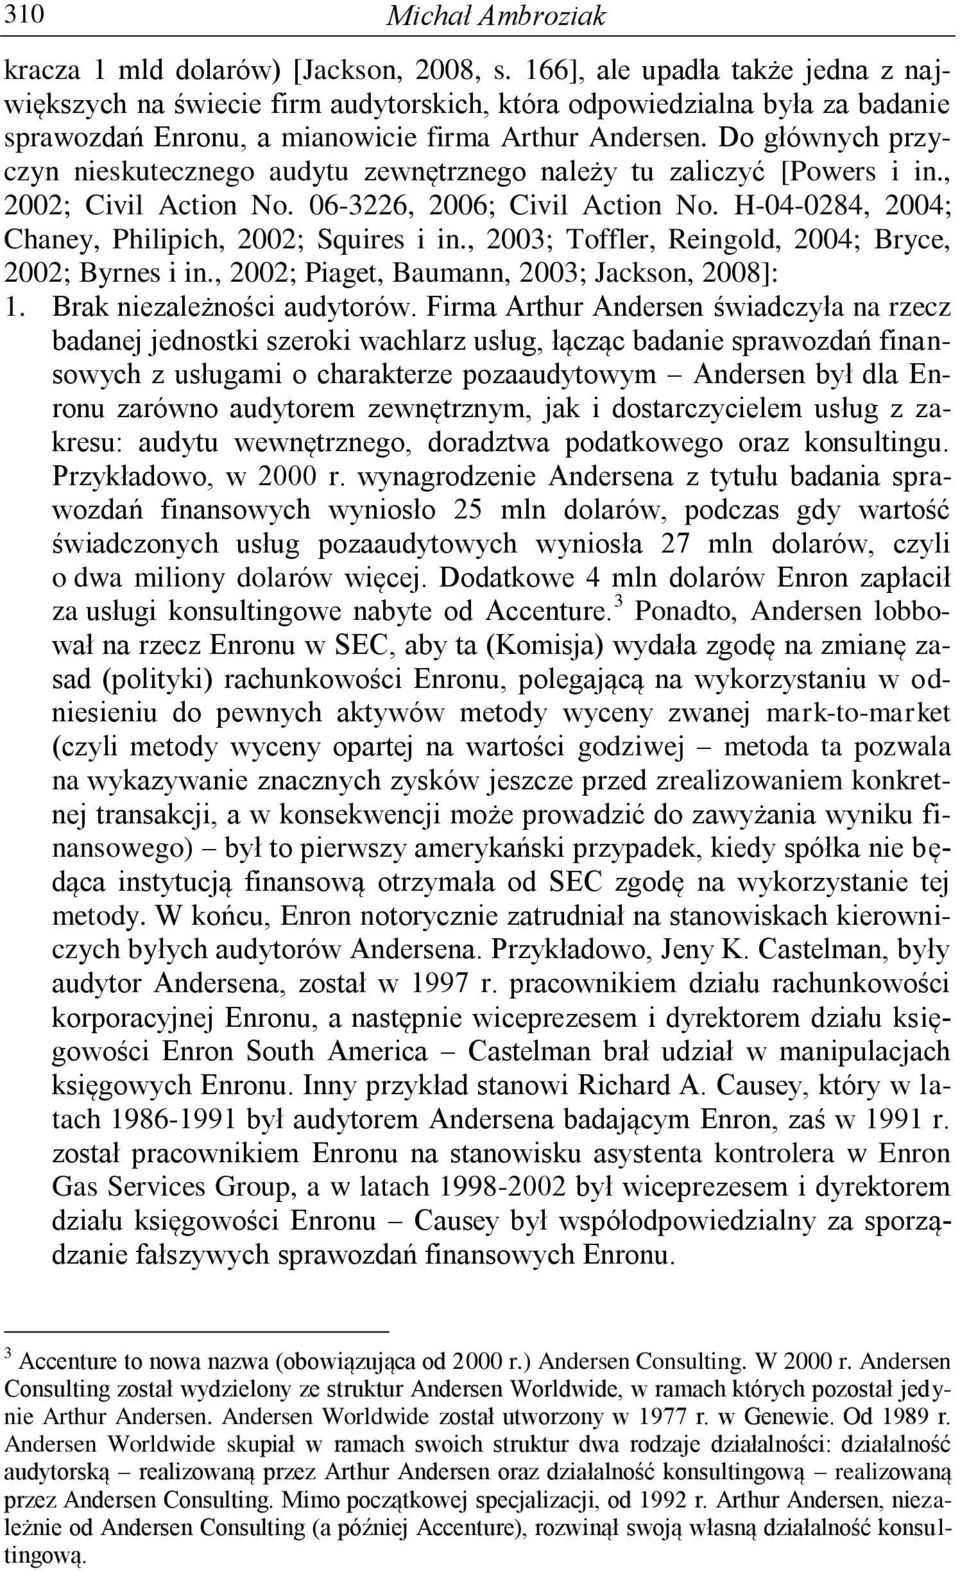 Do głównych przyczyn nieskutecznego audytu zewnętrznego należy tu zaliczyć [Powers i in., 2002; Civil Action No. 06-3226, 2006; Civil Action No. H-04-0284, 2004; Chaney, Philipich, 2002; Squires i in.